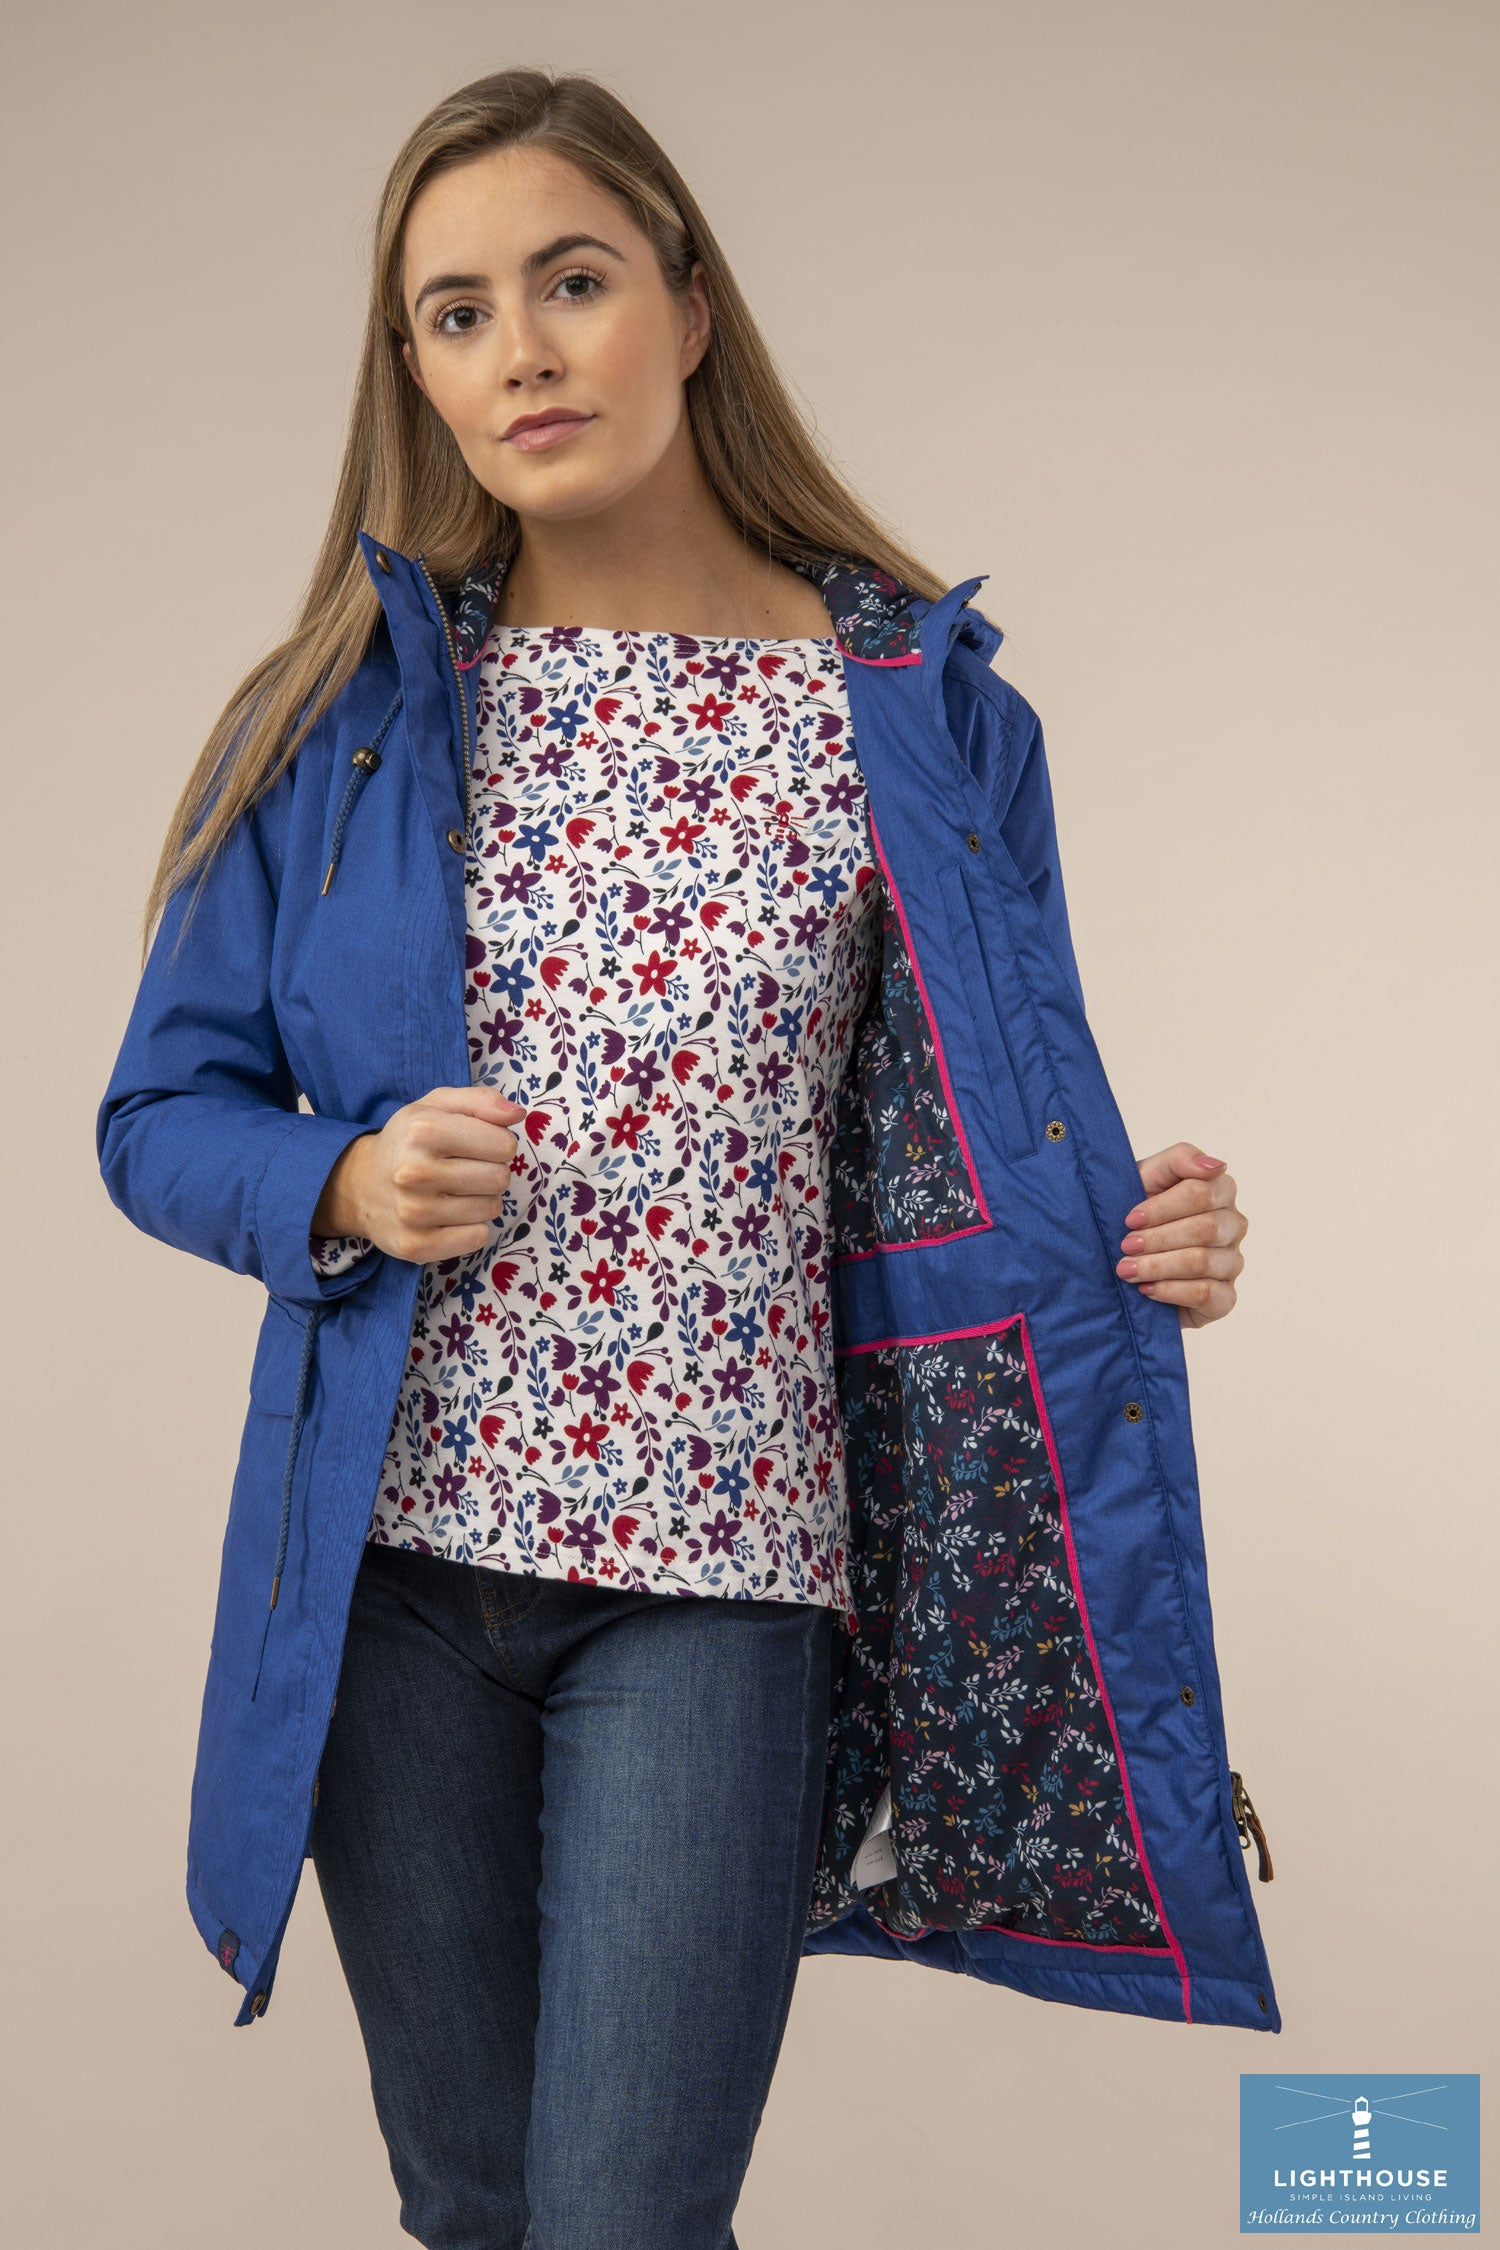 Colourful lining Lighthouse Lauren Waterproof Parka Jacket